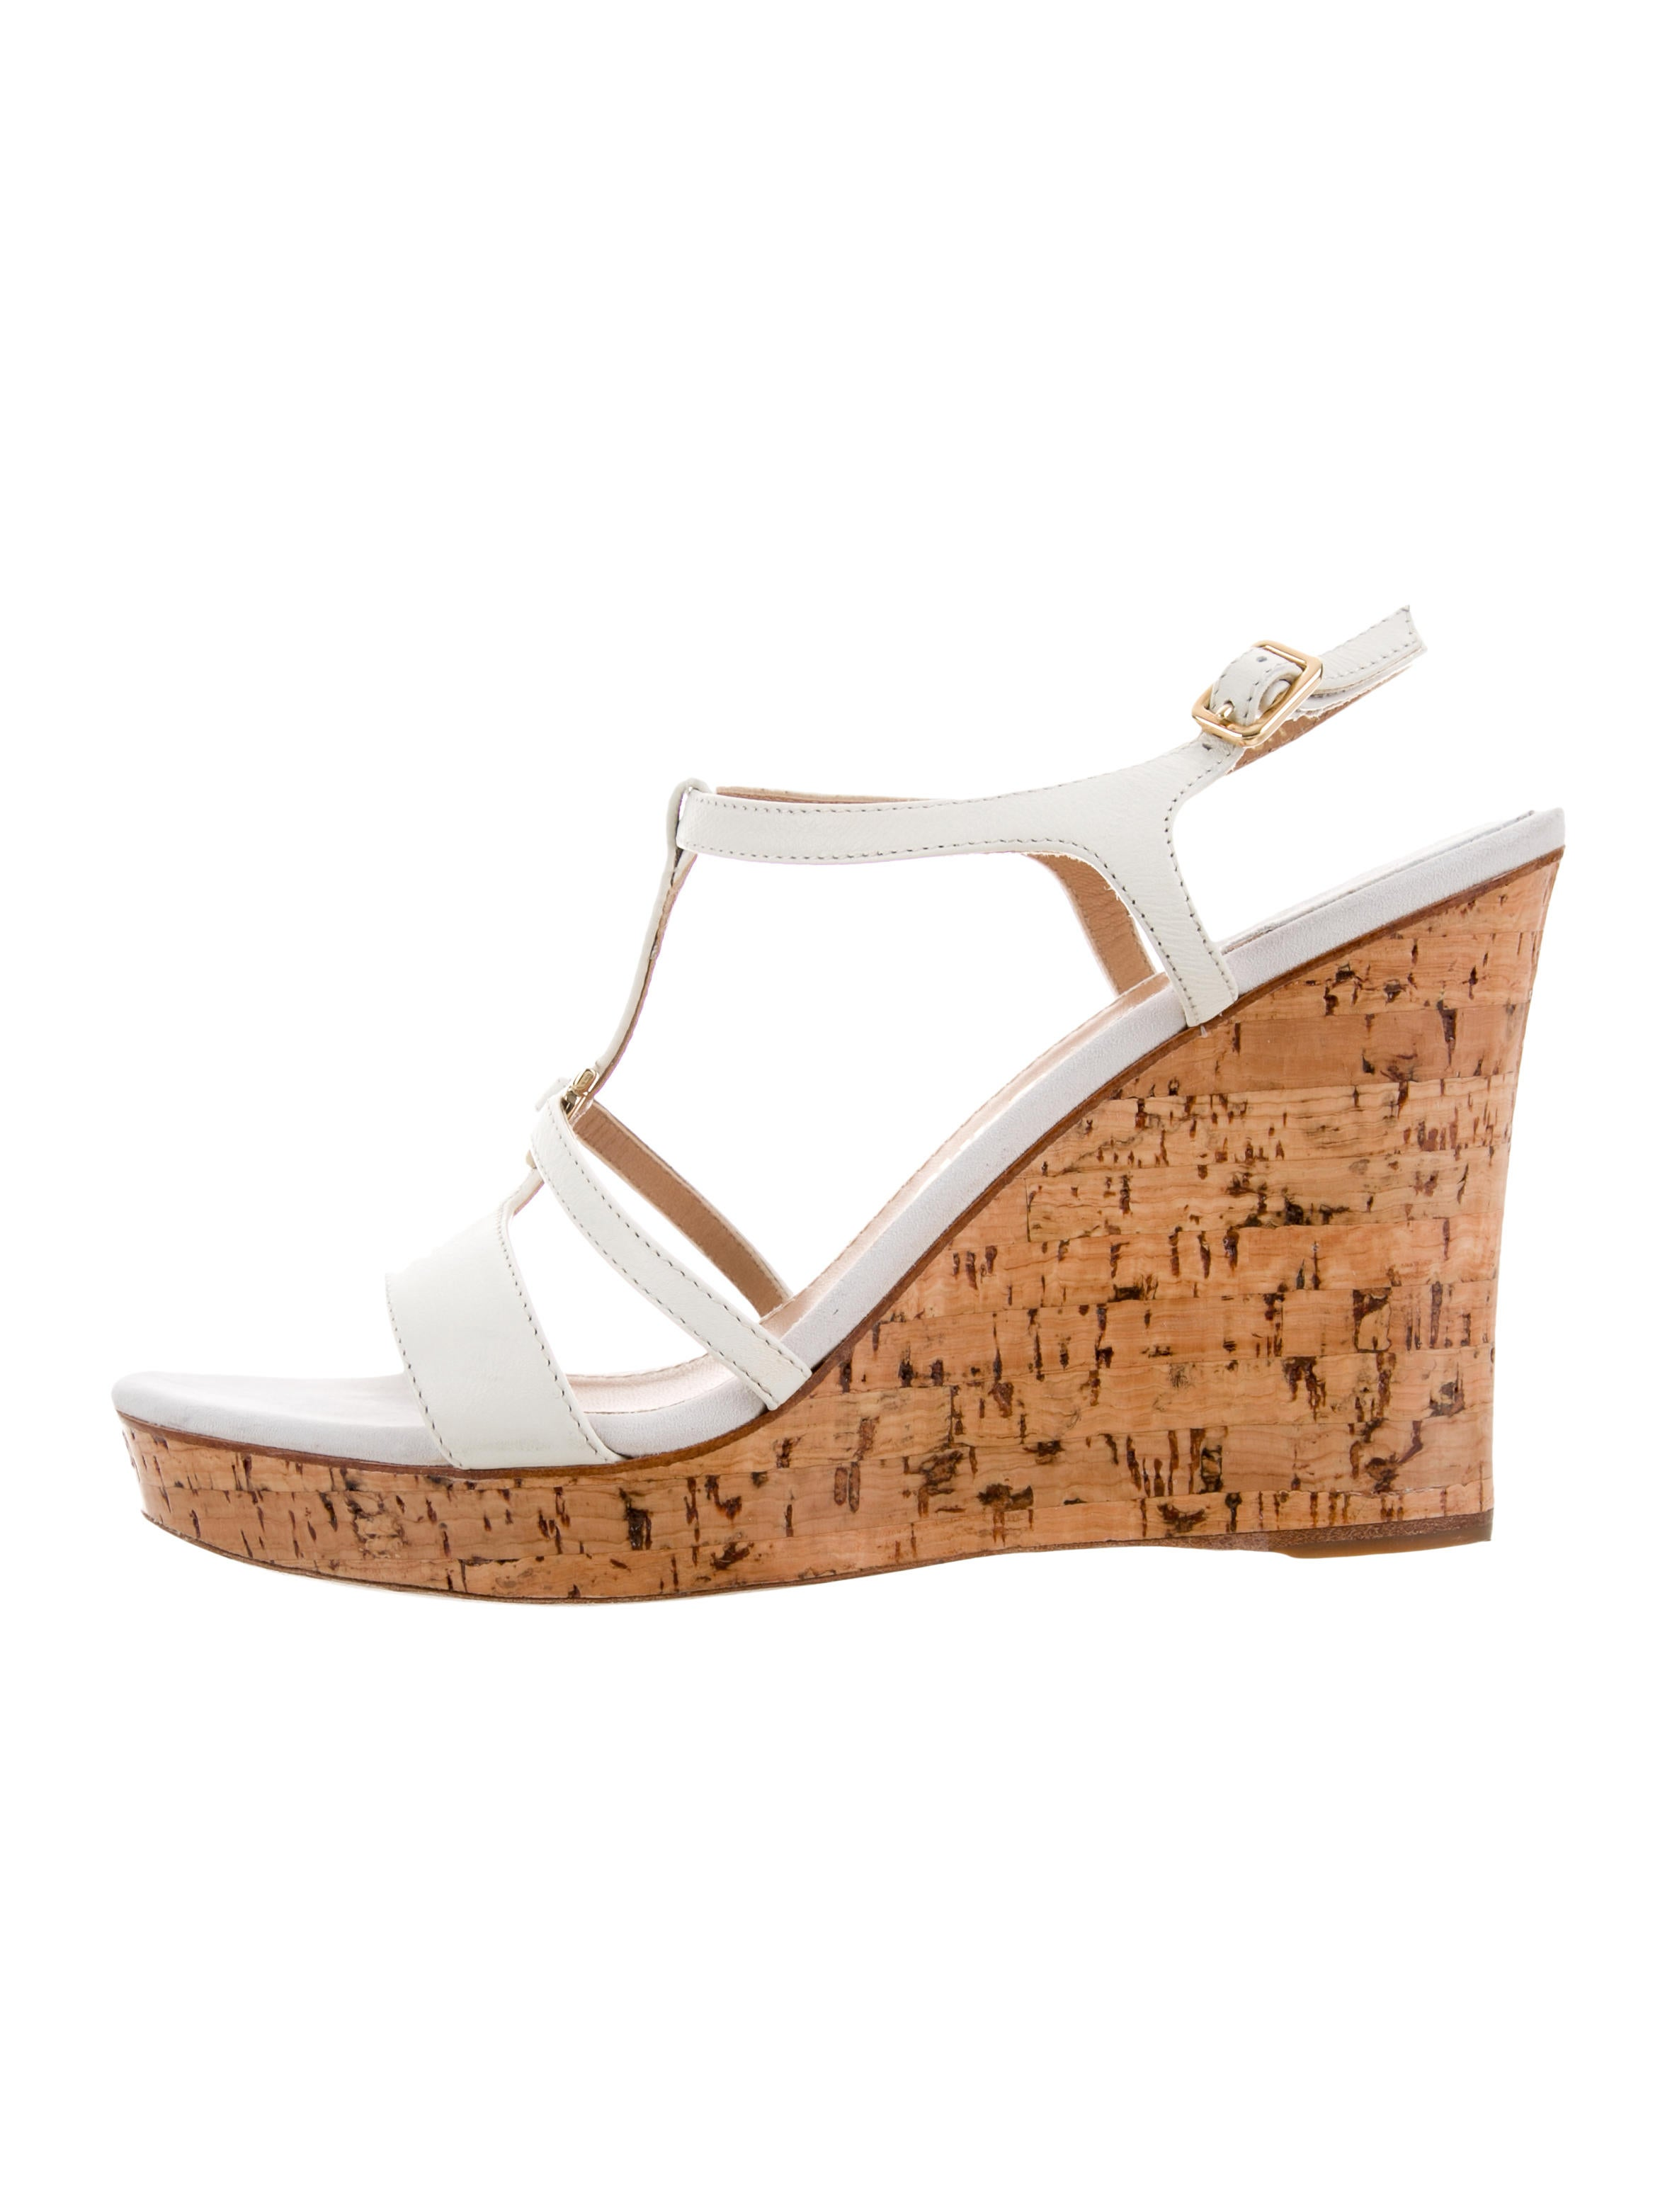 outlet free shipping authentic Salvatore Ferragamo Gancini Wedge Sandals sale browse For sale online obE8N